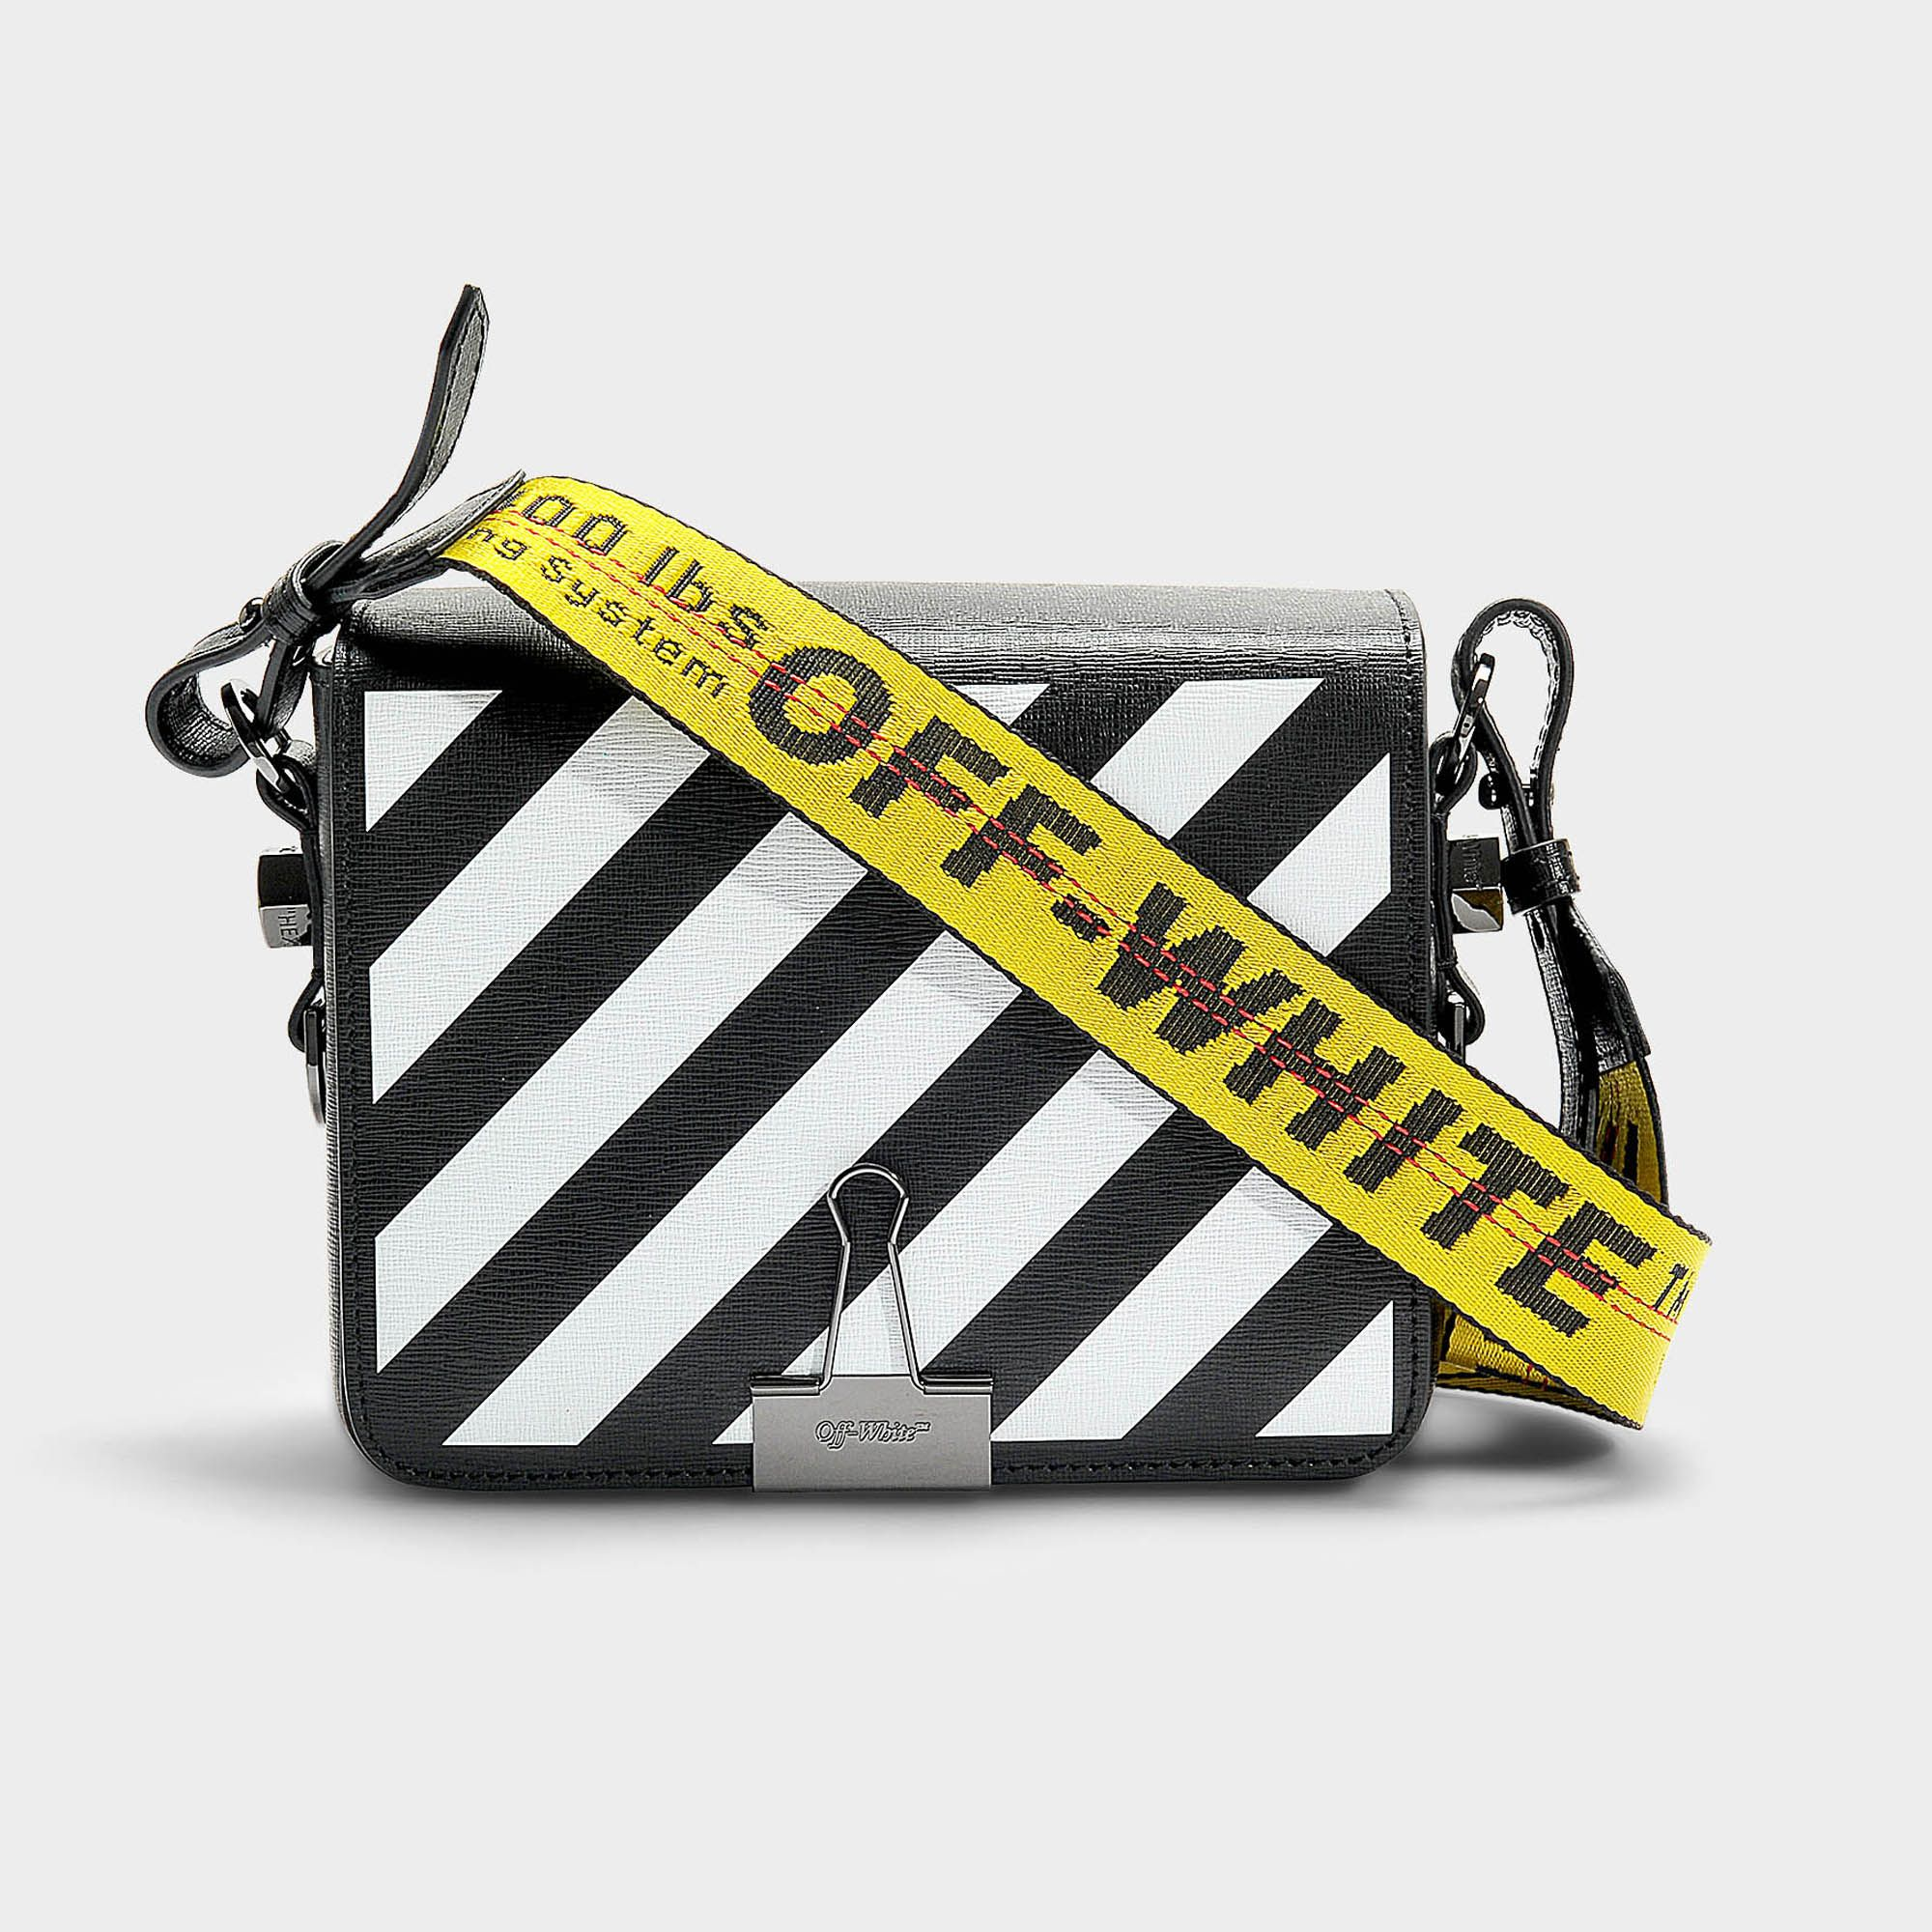 ff50c5555f4 Off-White Black And White Diag Flap Bag In Black And White Calfskin ...